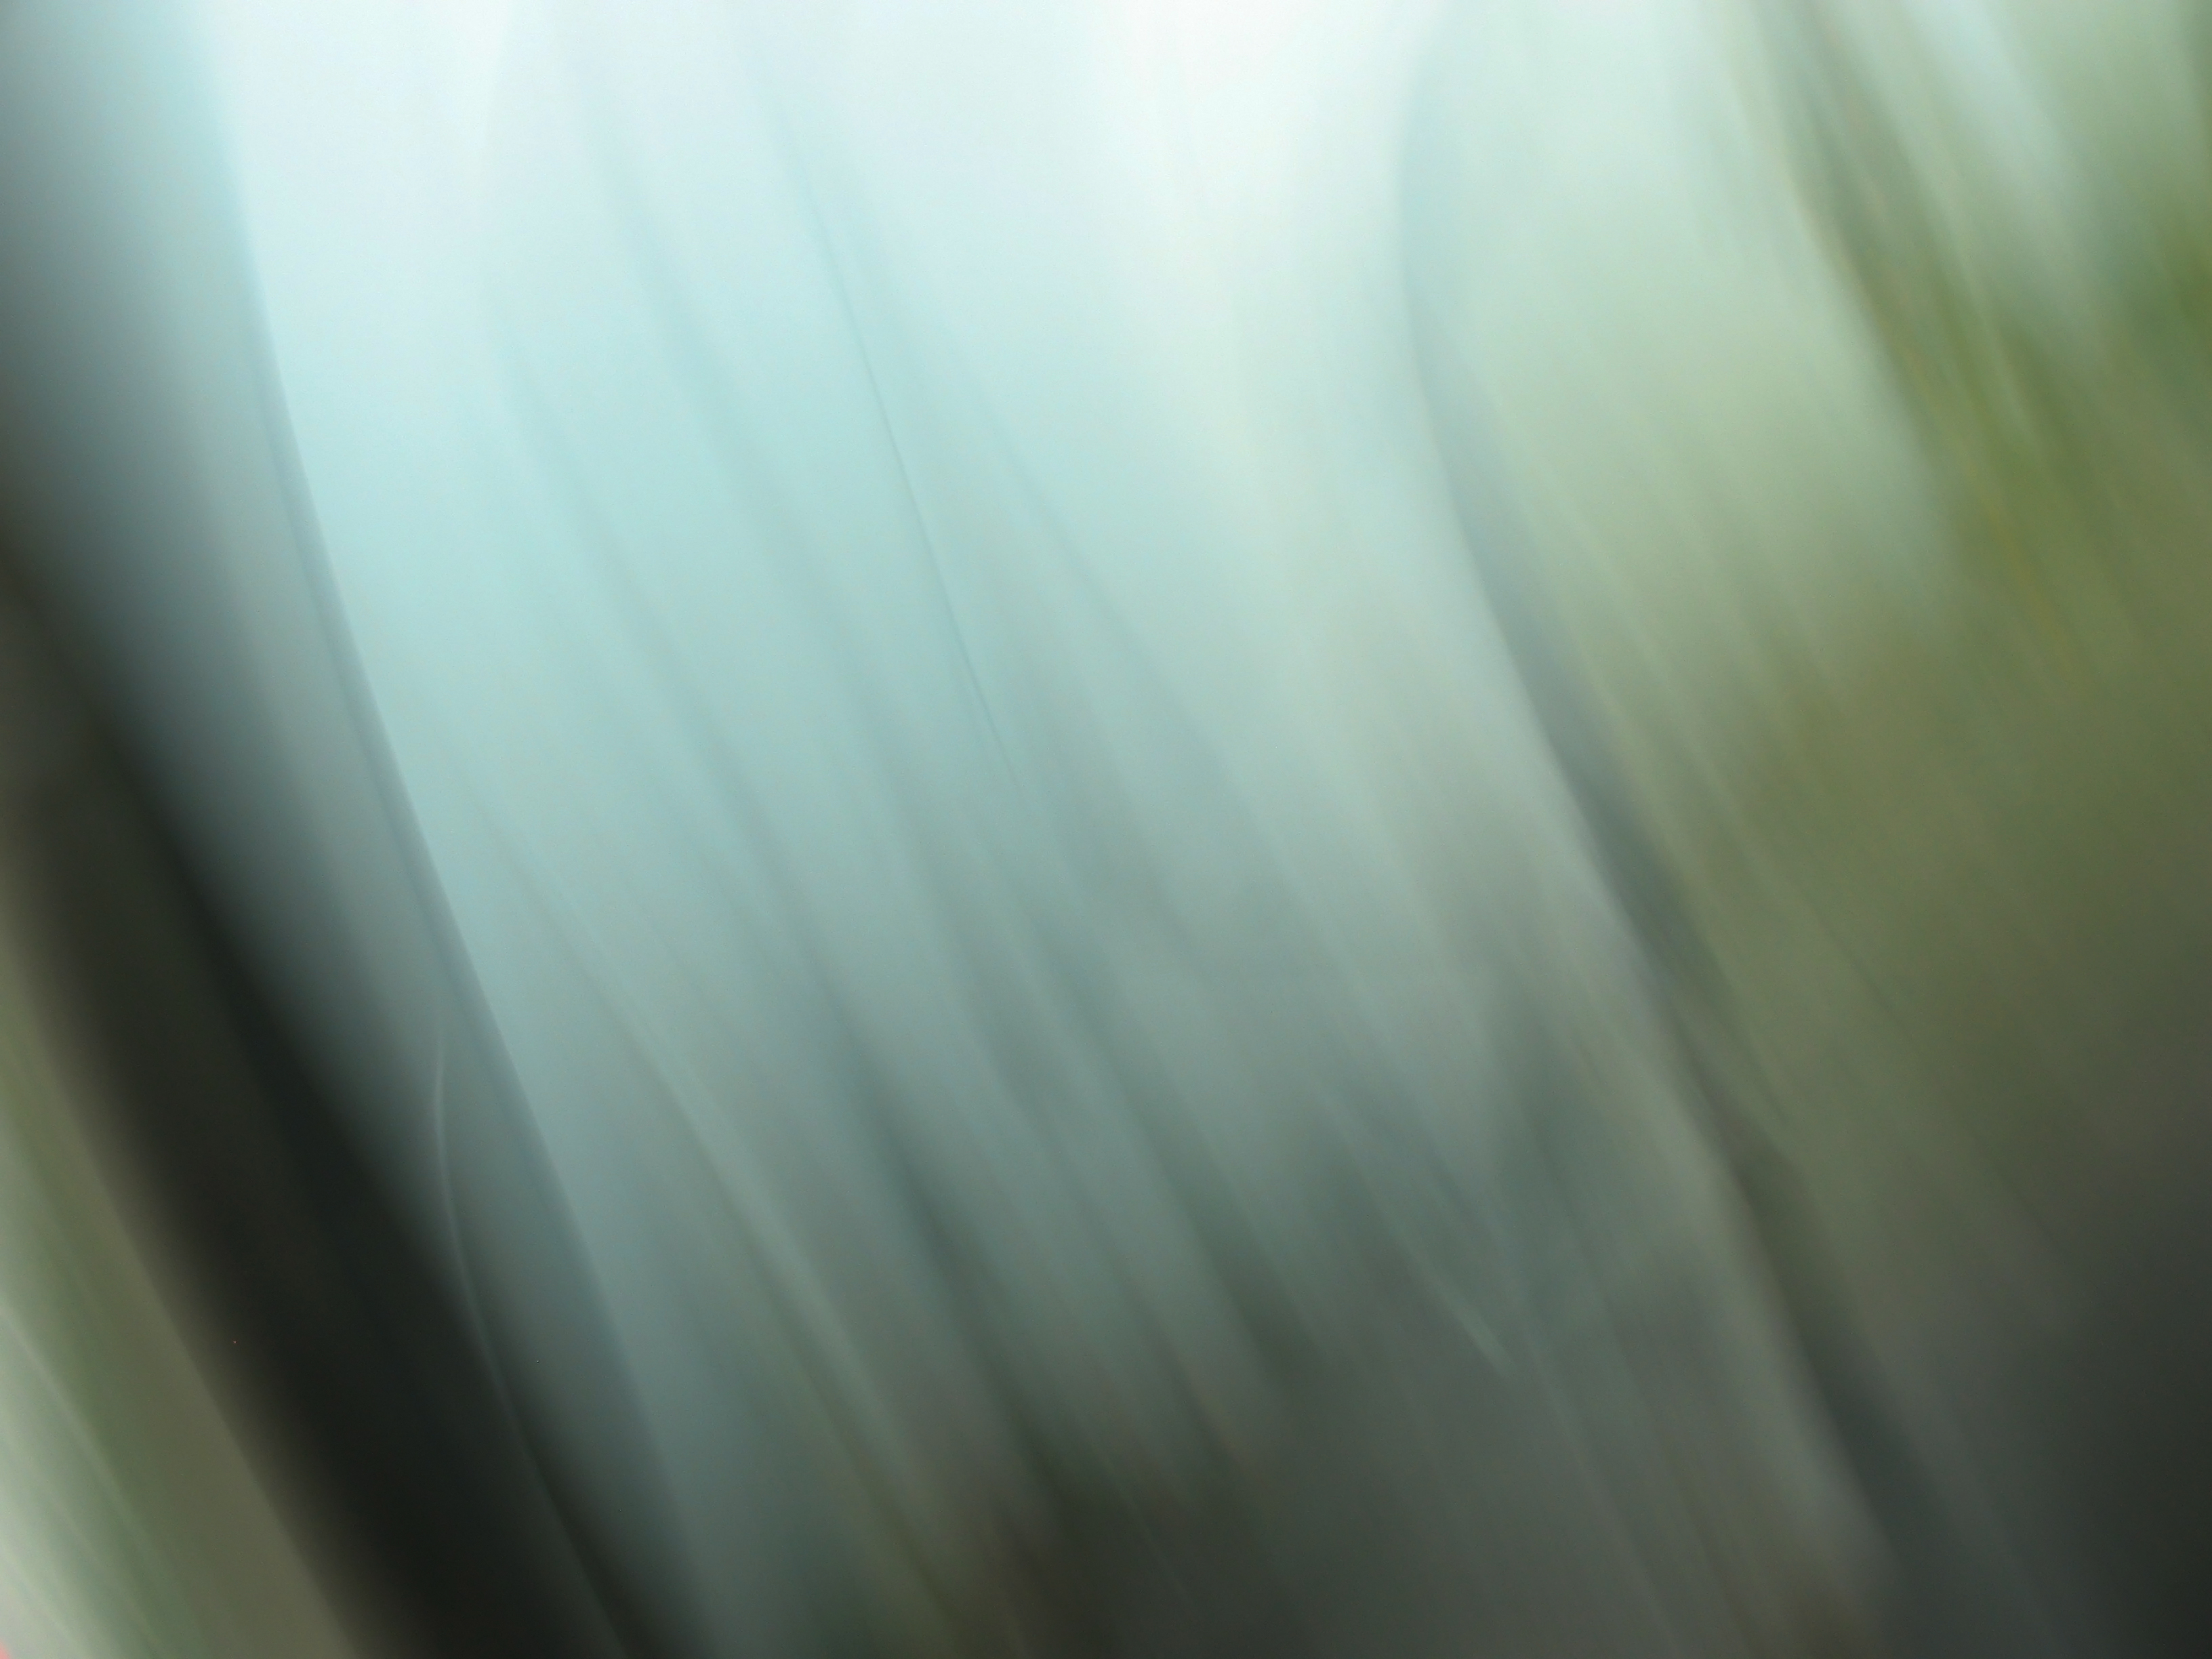 Motion blur background texture image